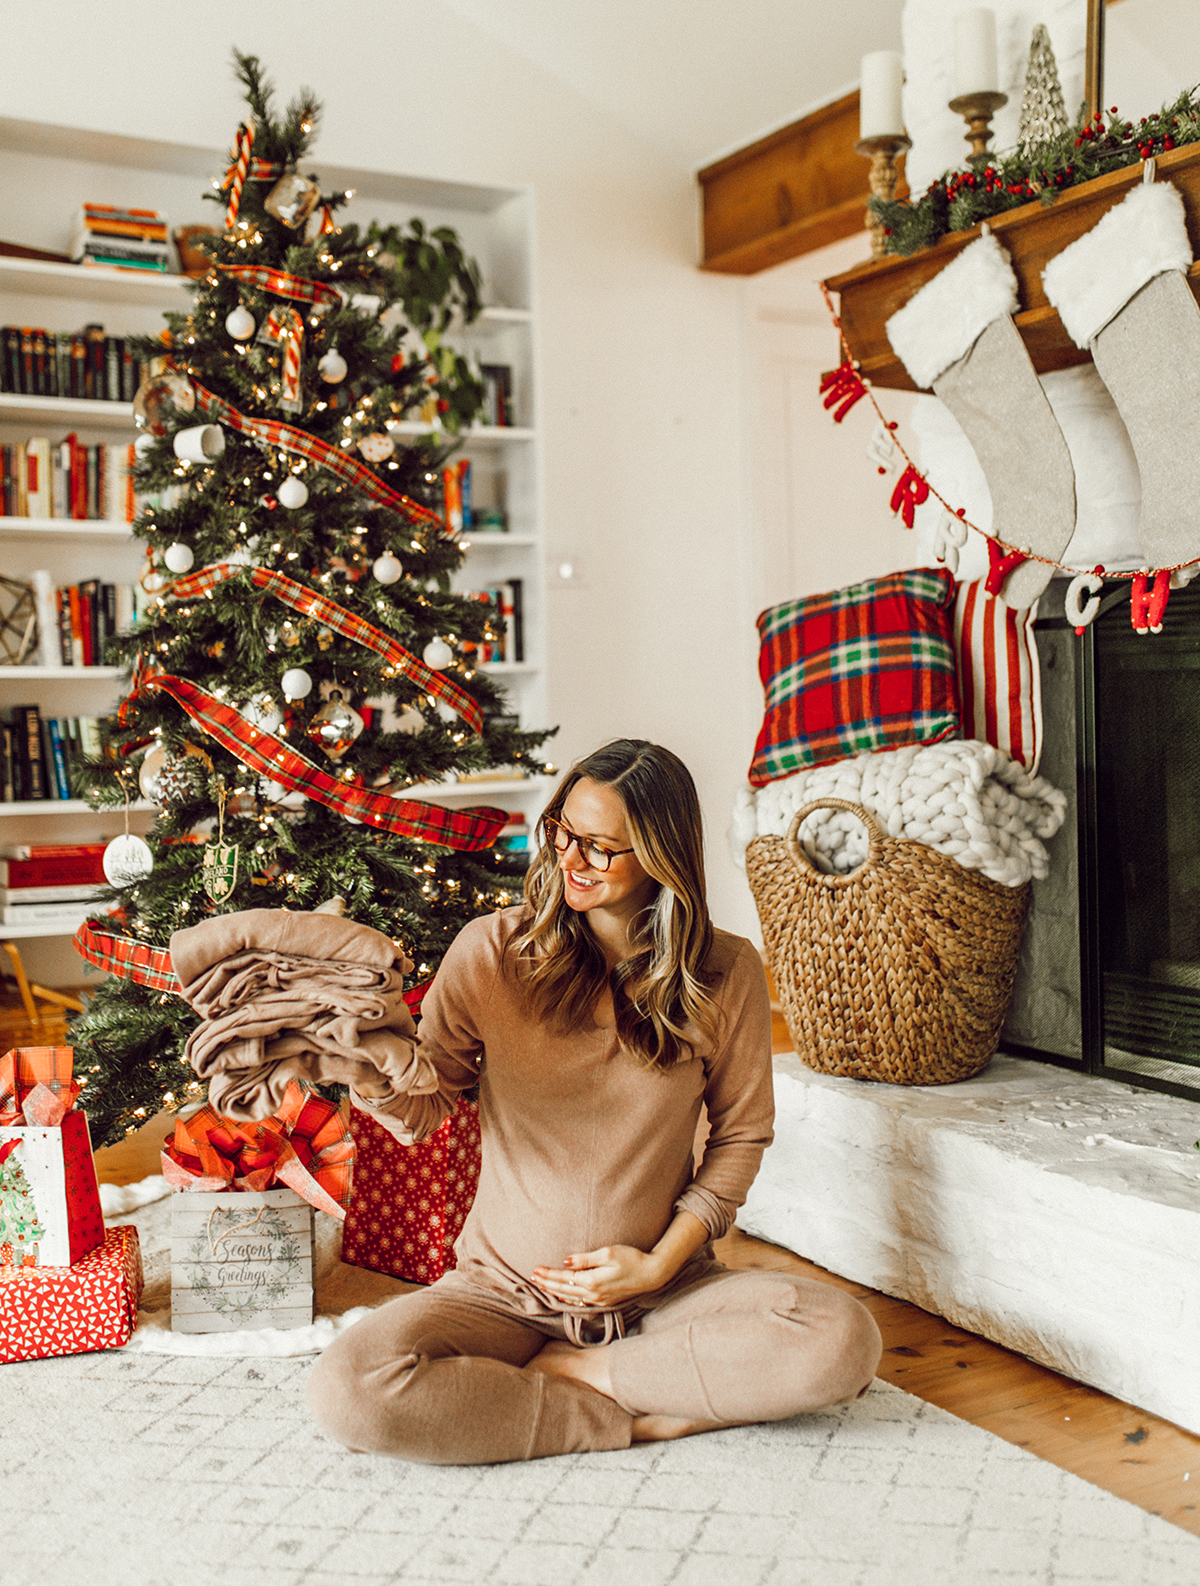 livvyland-blog-olivia-watson-austin-texas-fashion-blogger-cozy-christmas-gift-idea-bobeau-loungewear-9